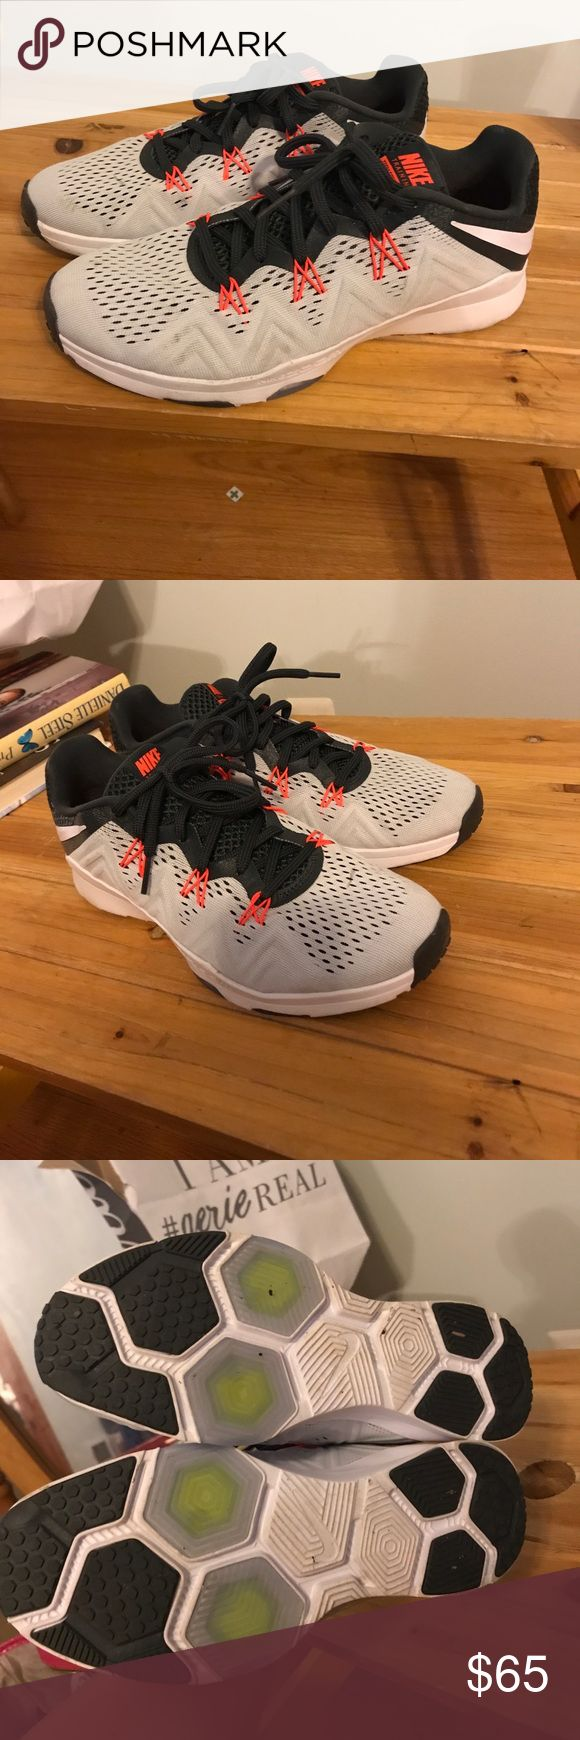 Nike running shoes Worn one time still brand new Nike Shoes Sneakers